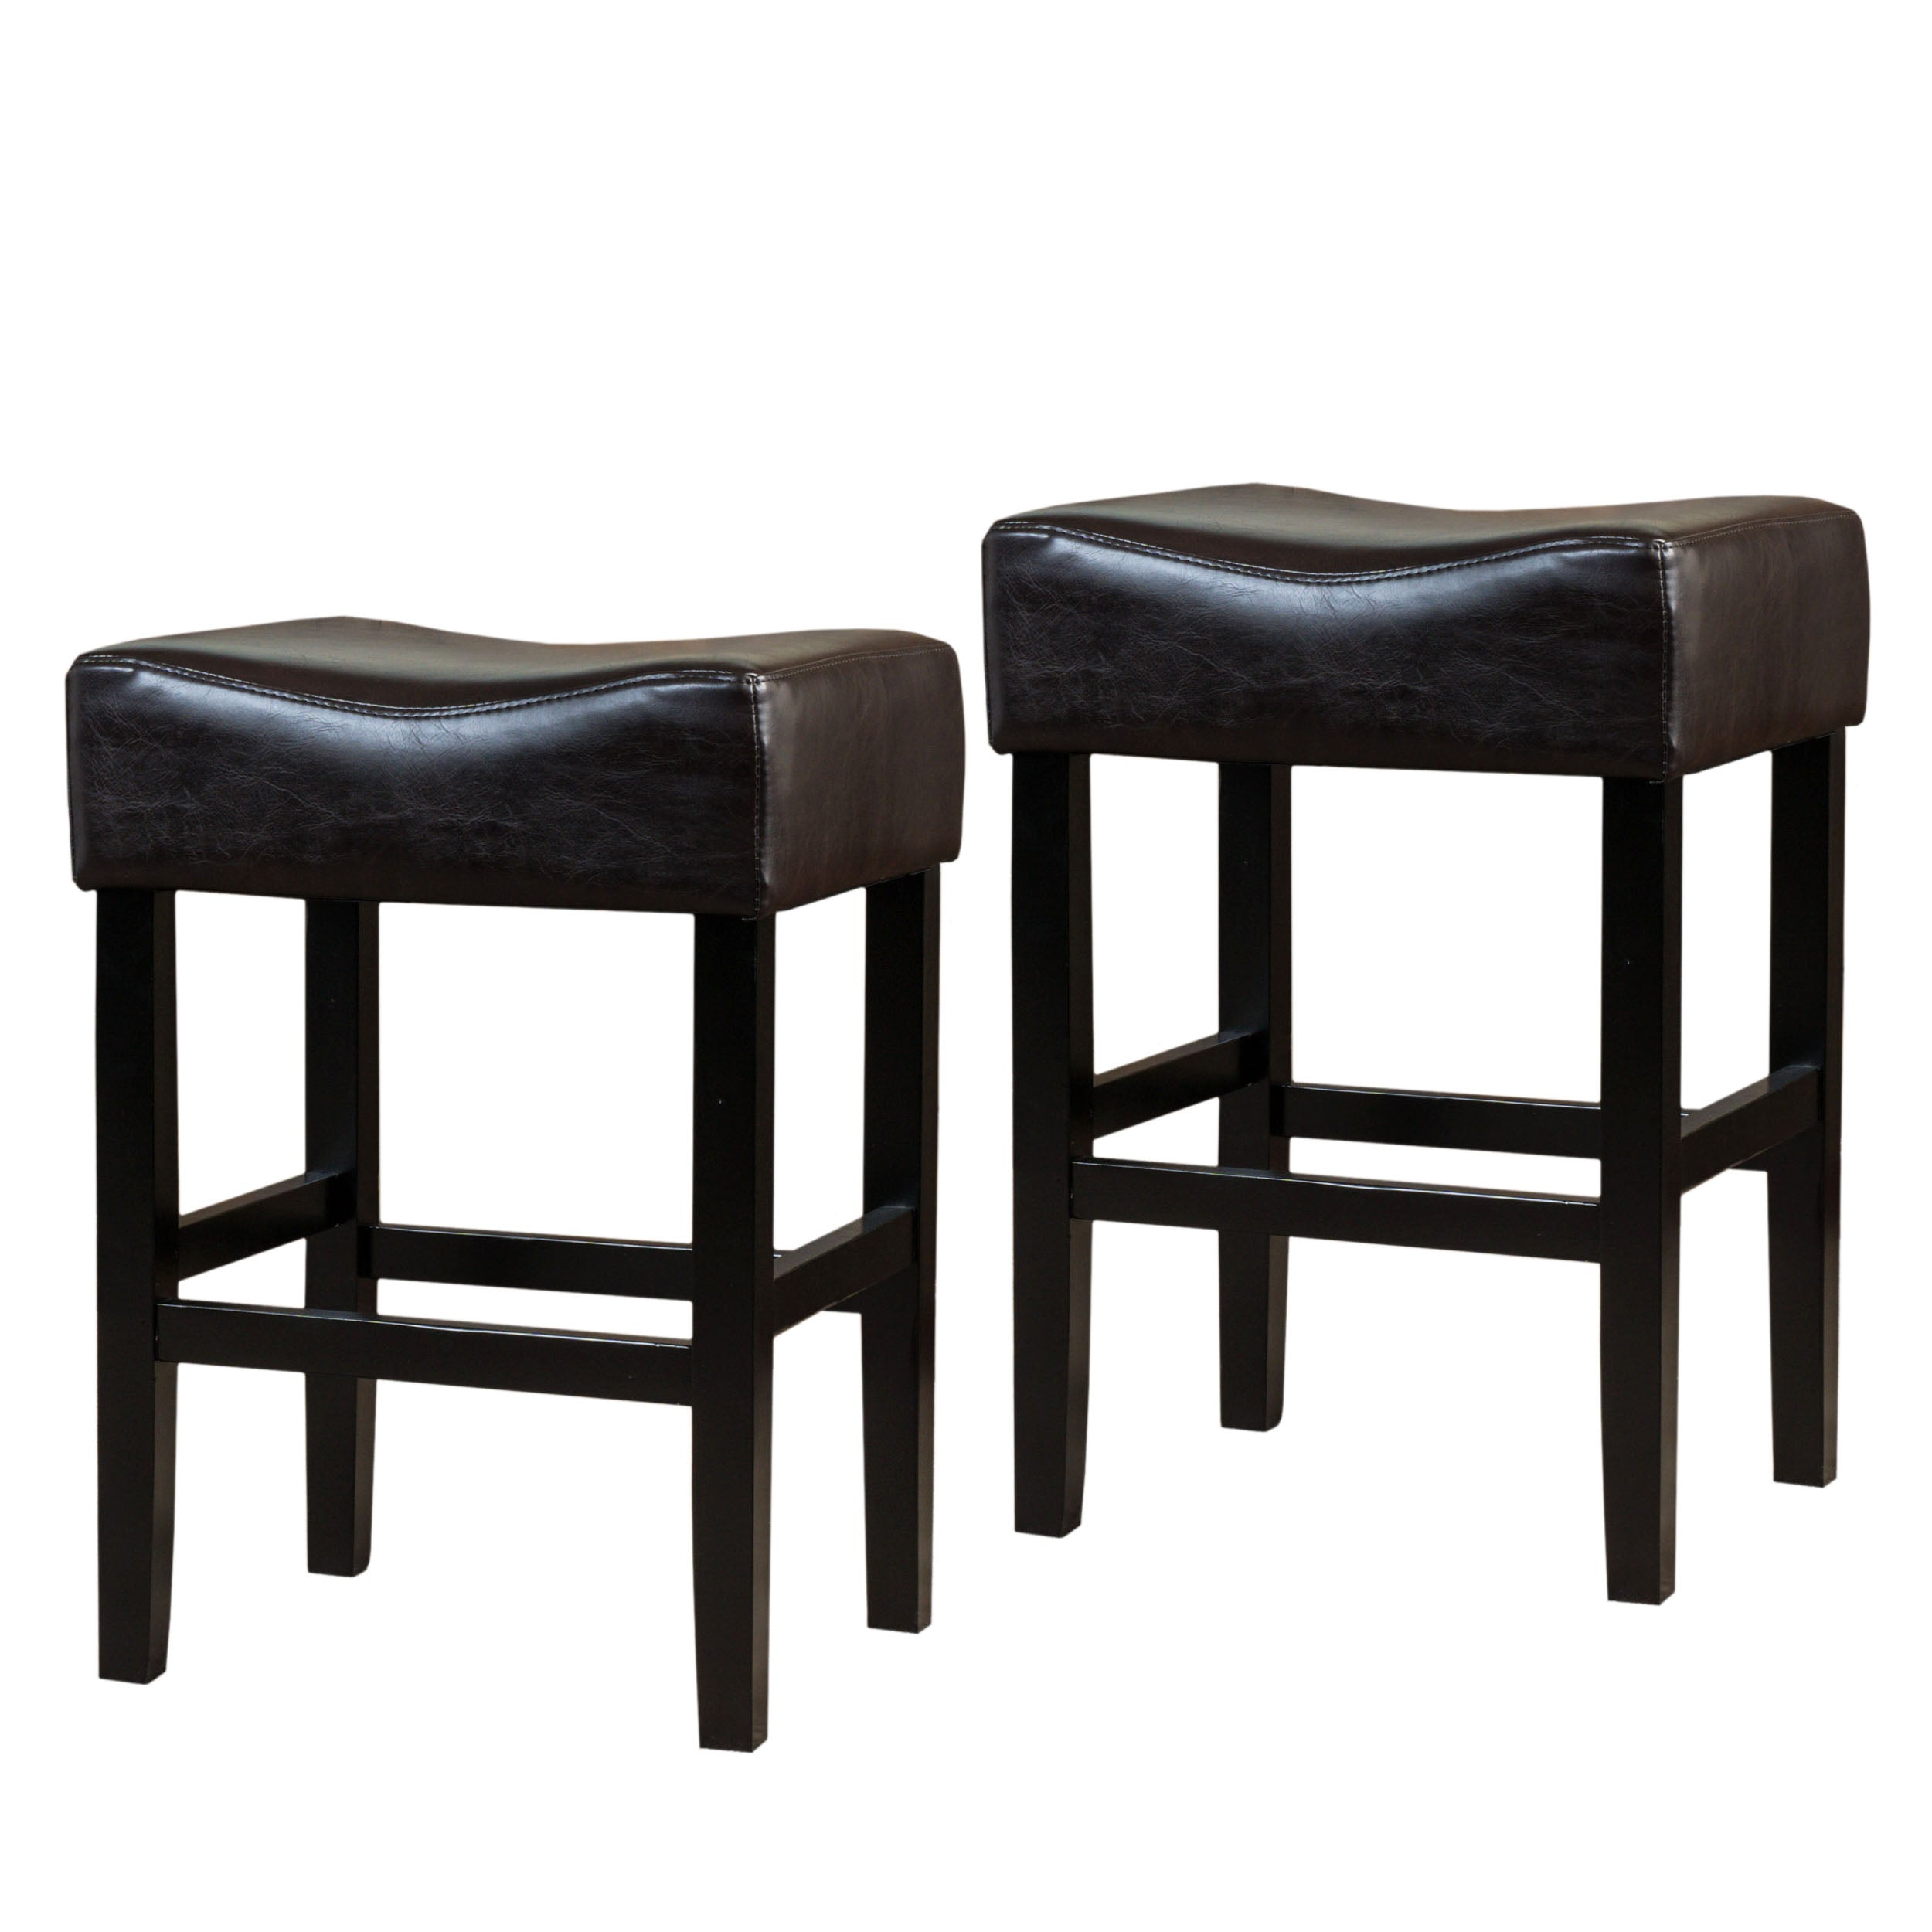 Adler 26 Inch Brown Leather Backless Counter Stool Set of 2 Default Title